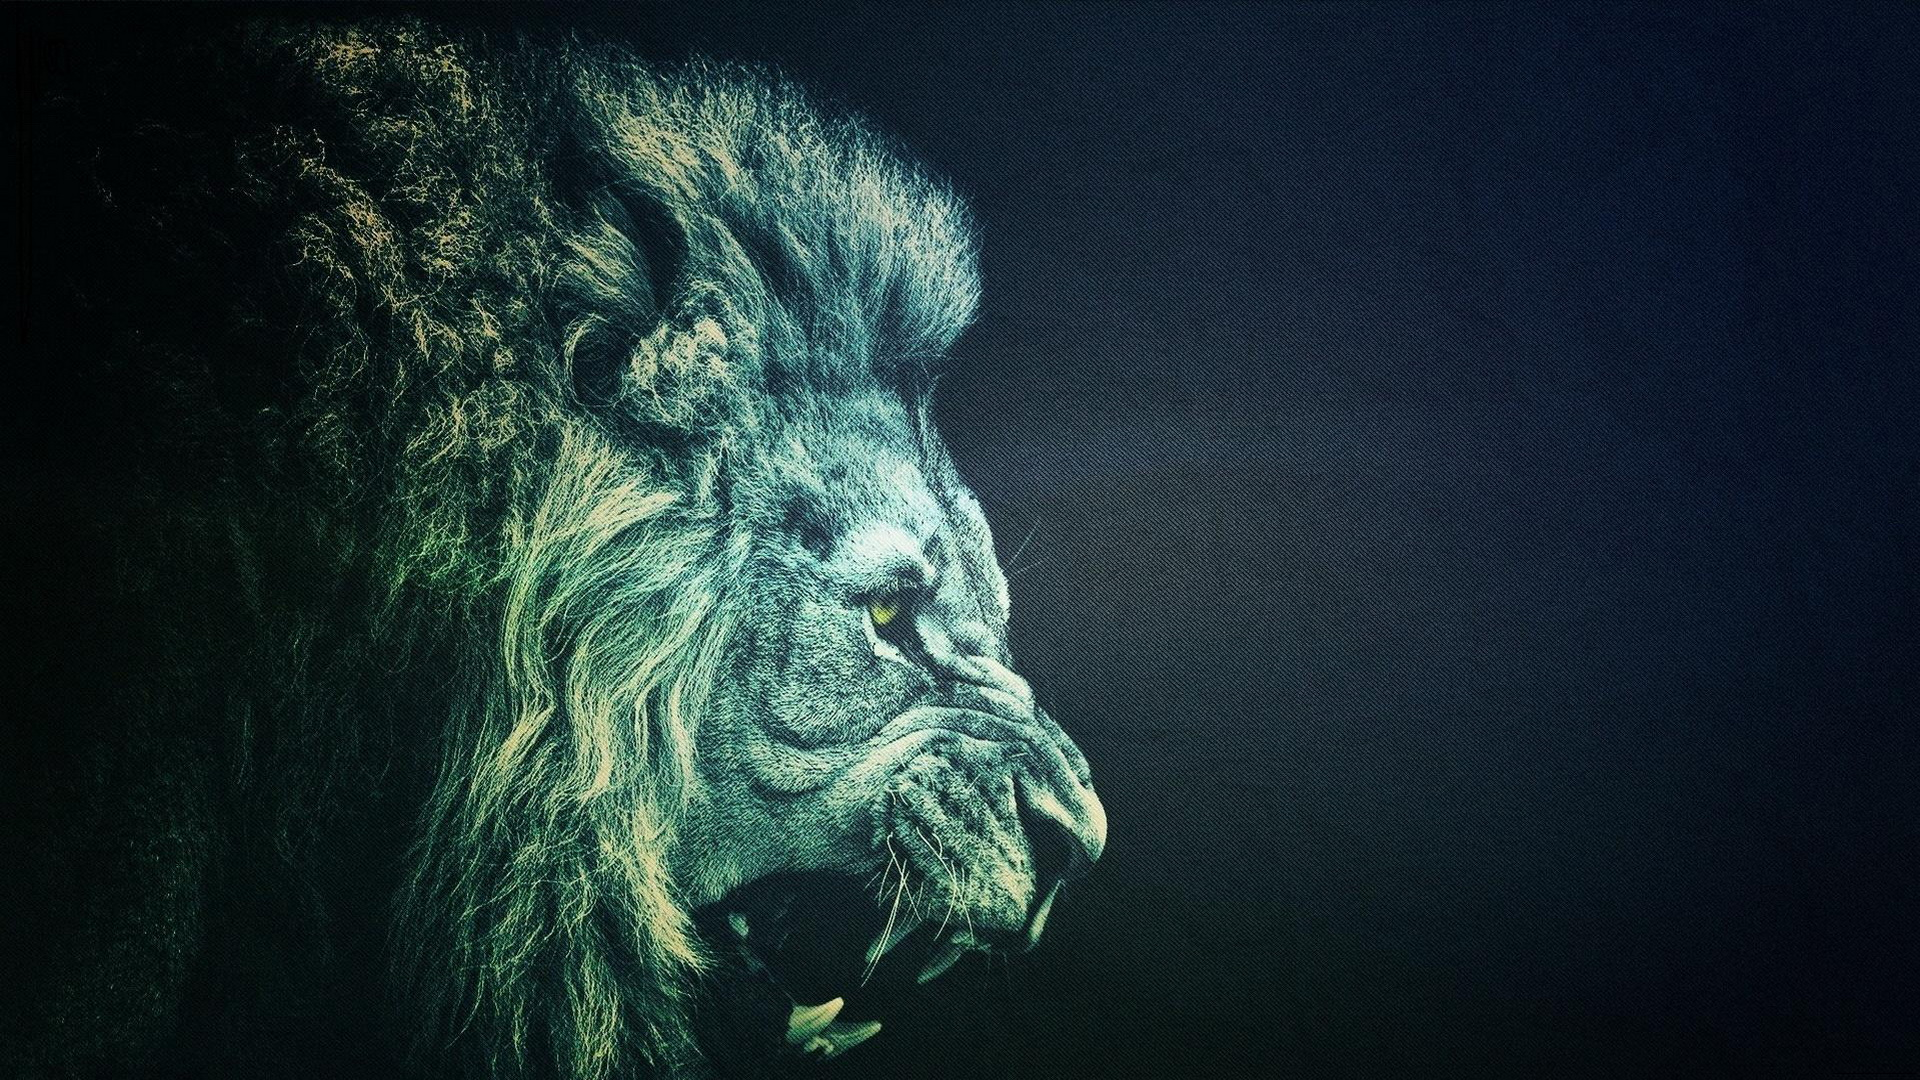 HD wallpapers iphone 5 wallpaper hd lion